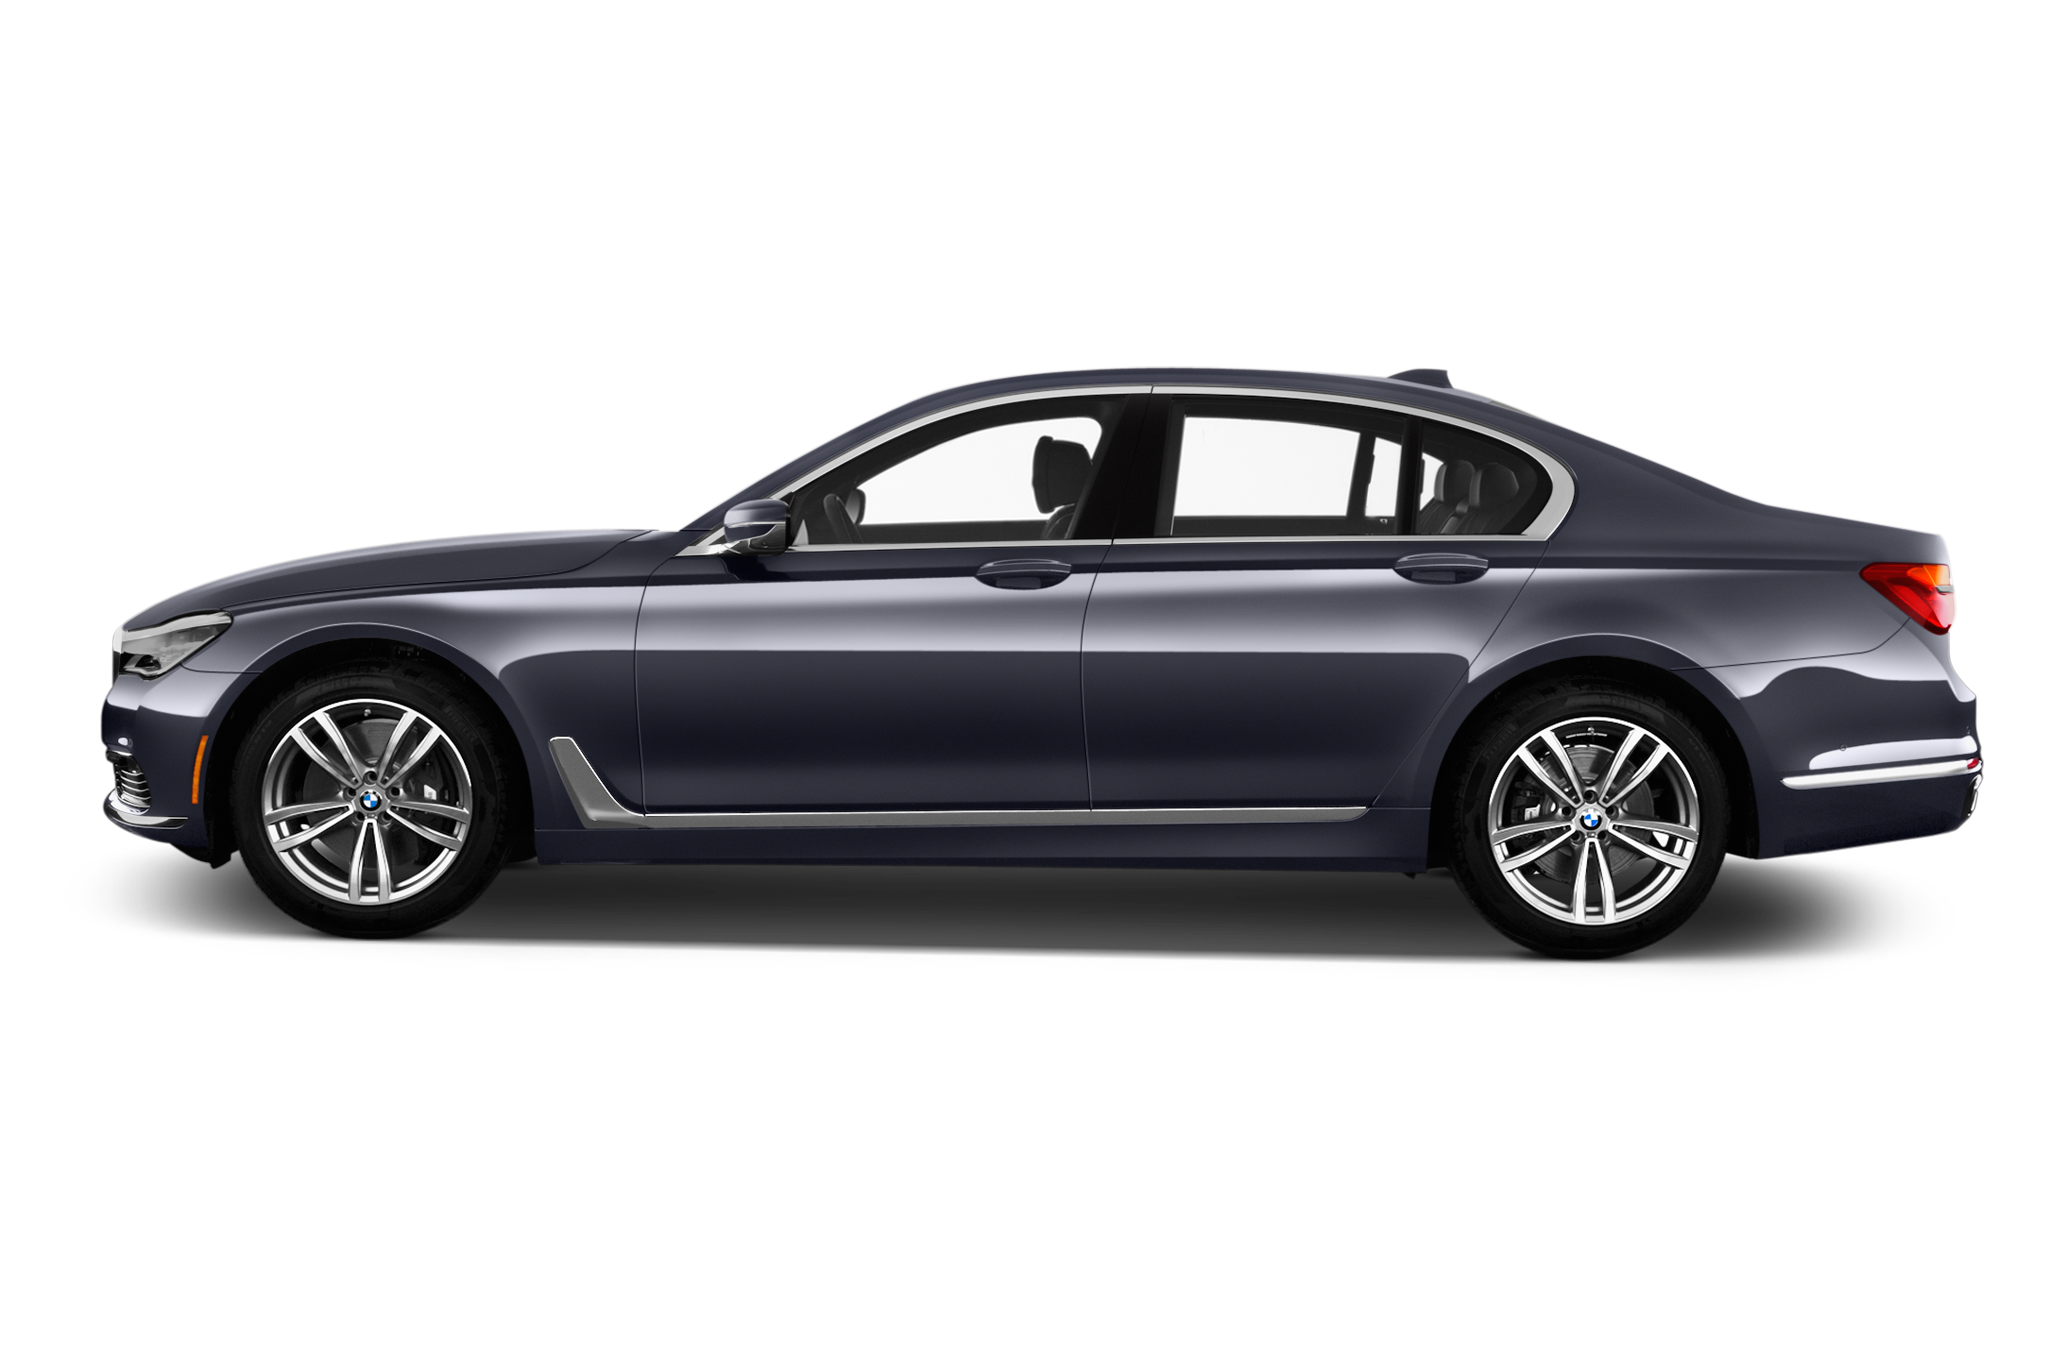 Bmw side view png. Special edition series celebrates